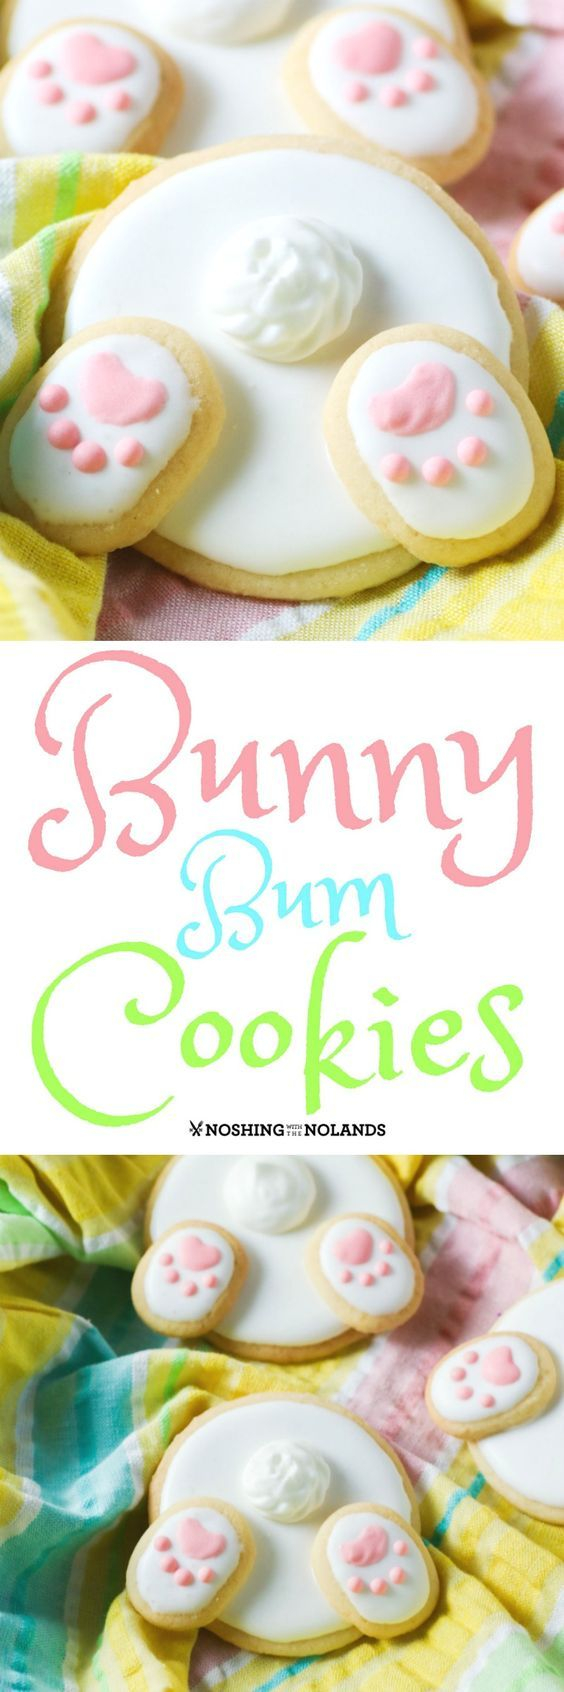 Bunny Bum Cookies by Noshing With The Nolands are the cutest cookies for Easter and spring! Have fun with the family decorating and eating them!: